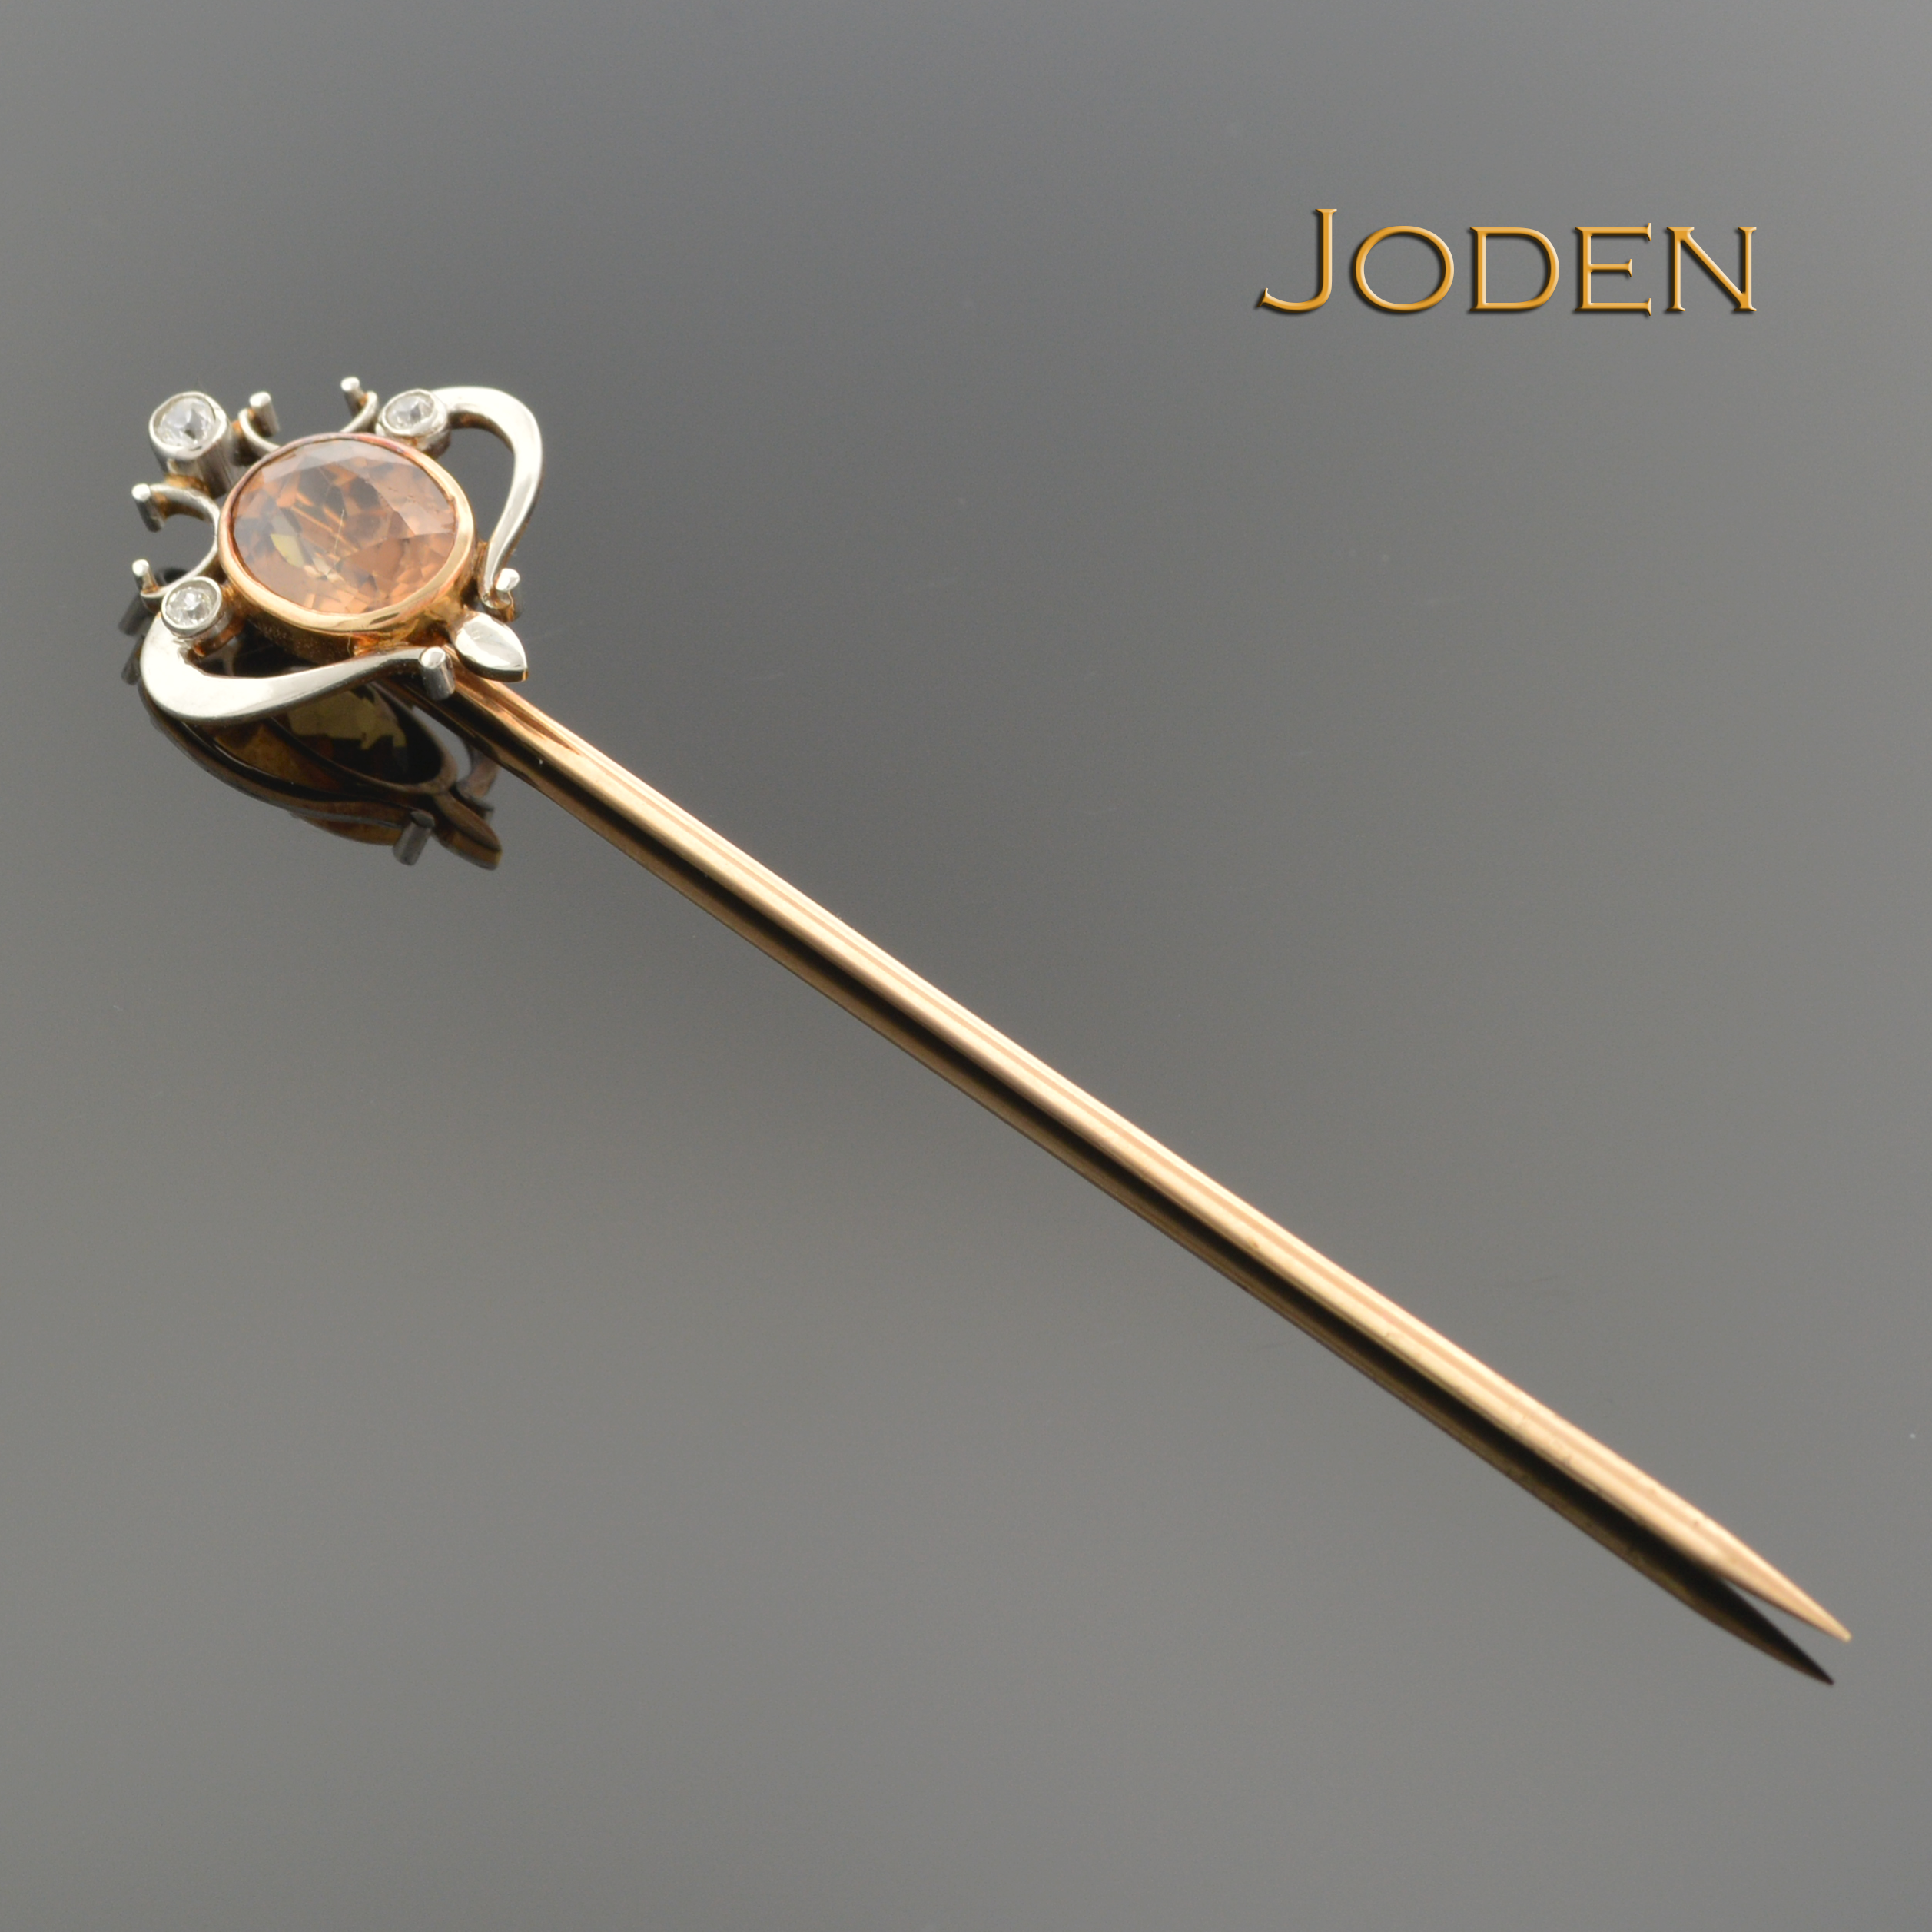 For those who appreciate the delightful design of Edwardian jewelry, this is a noteworthy pin. Stick pins are lovely and understated accessories, adding a touch of sparkle to the lapel. This brooch has a striking two tone design with yellow metal on the back and white on the front. At the top an orange zircon is set and little round diamonds accent the swirling metalwork around it.